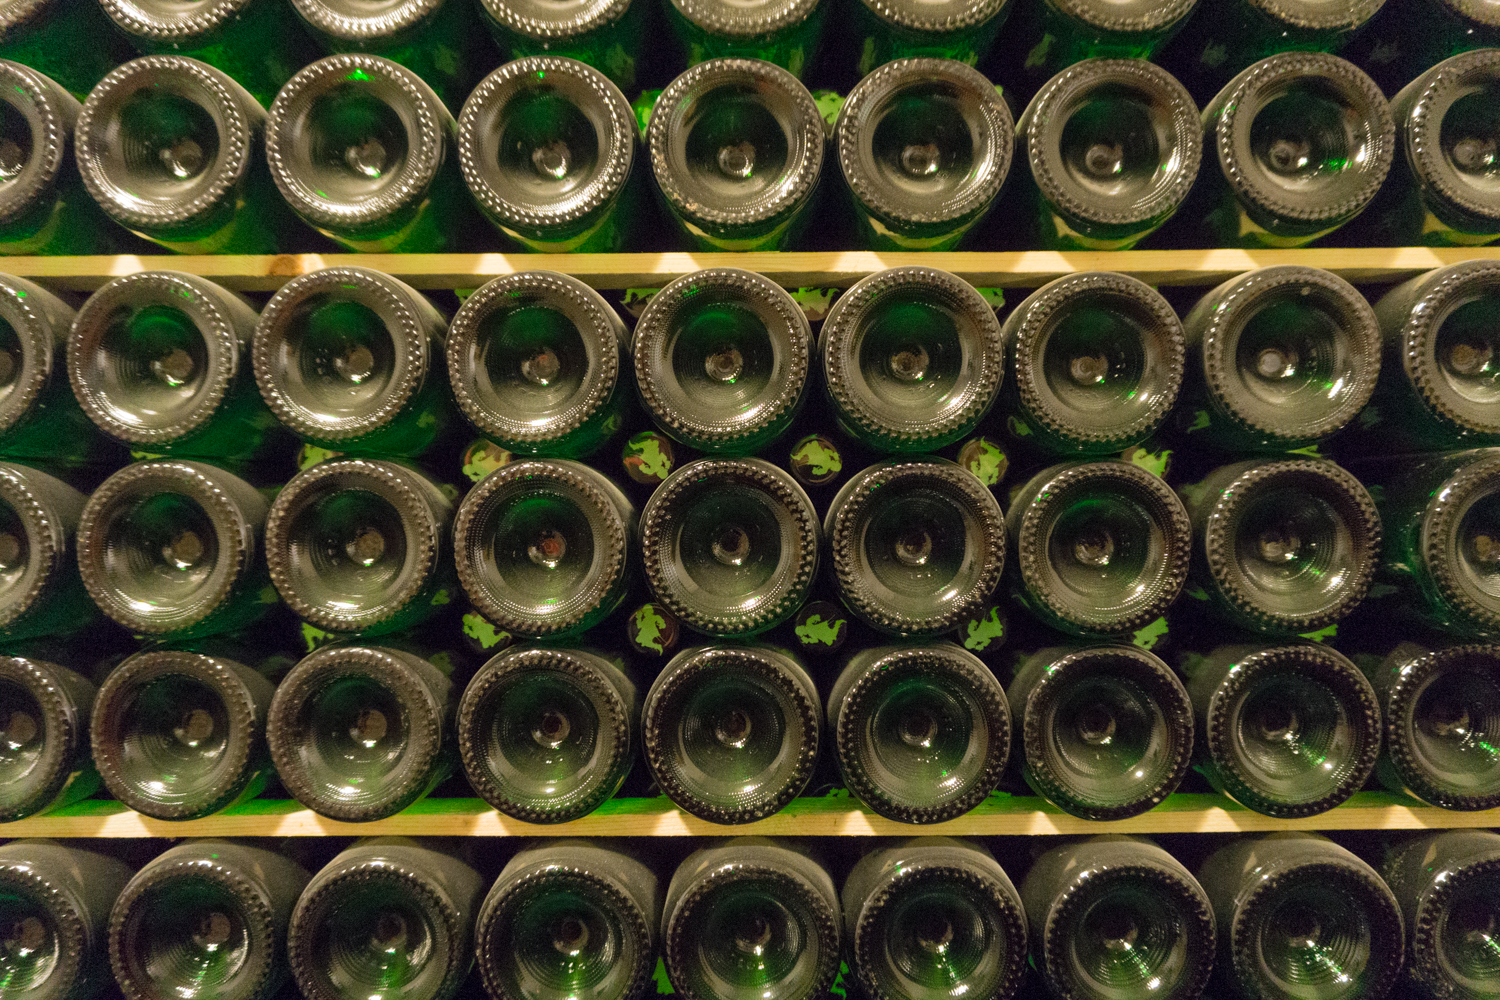 BRUSSELS: Bottles ready to ship at Brasserie Cantillon